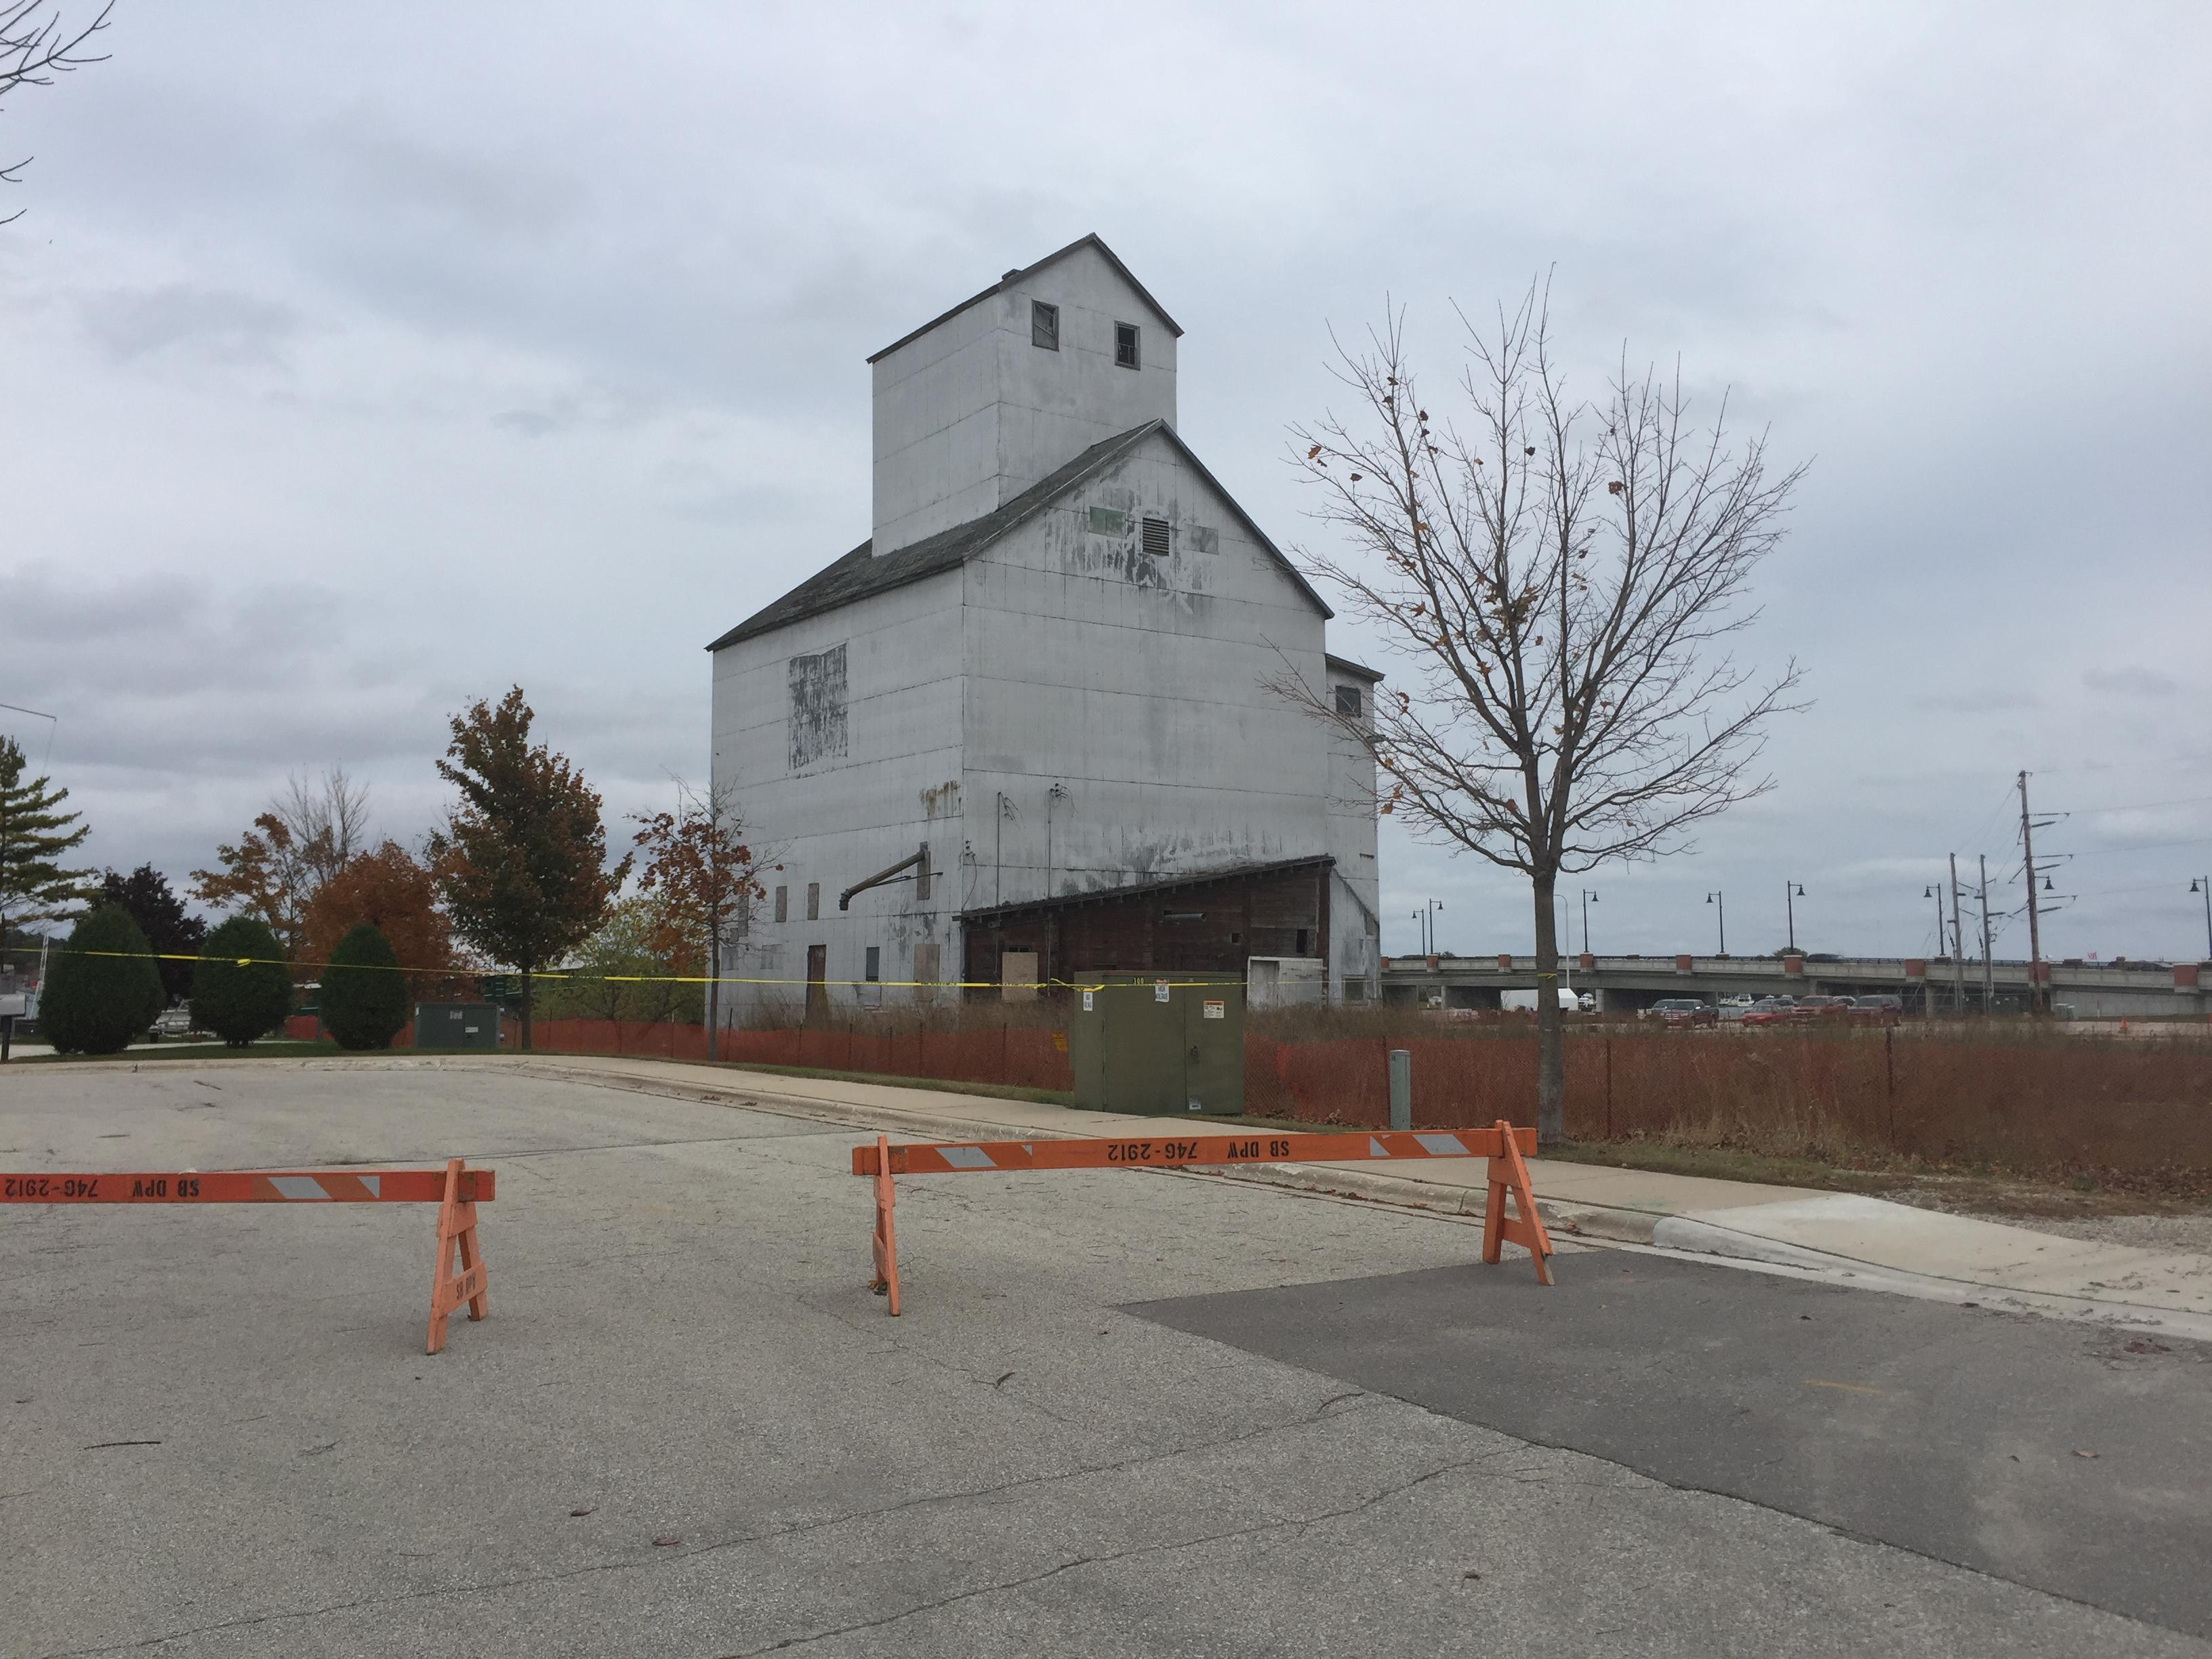 The Sturgeon Bay granary building, seen October 26, 2017. (WLUK/Ben Krumholz)<p></p>